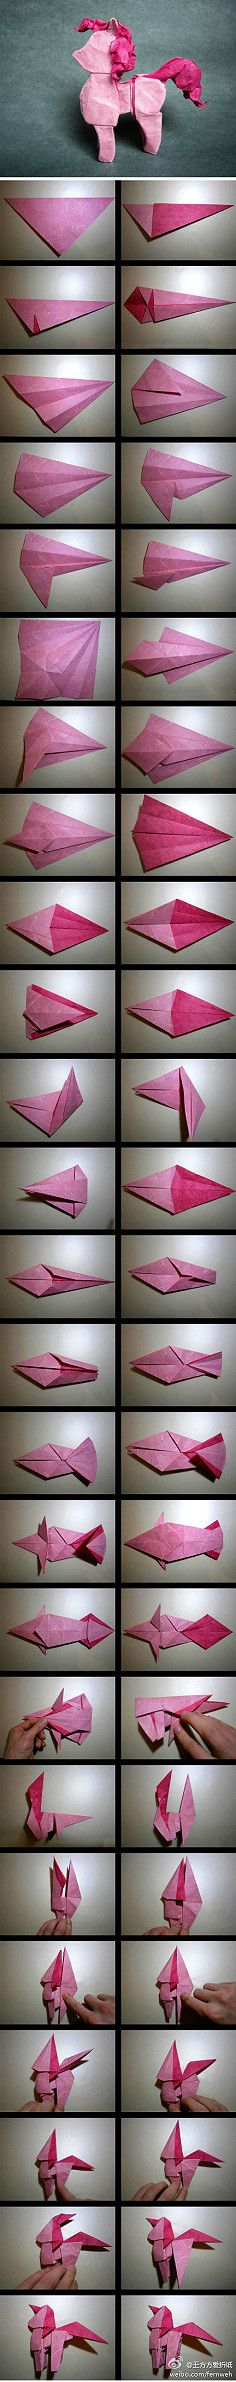 I want to make this but Im so bad at origami